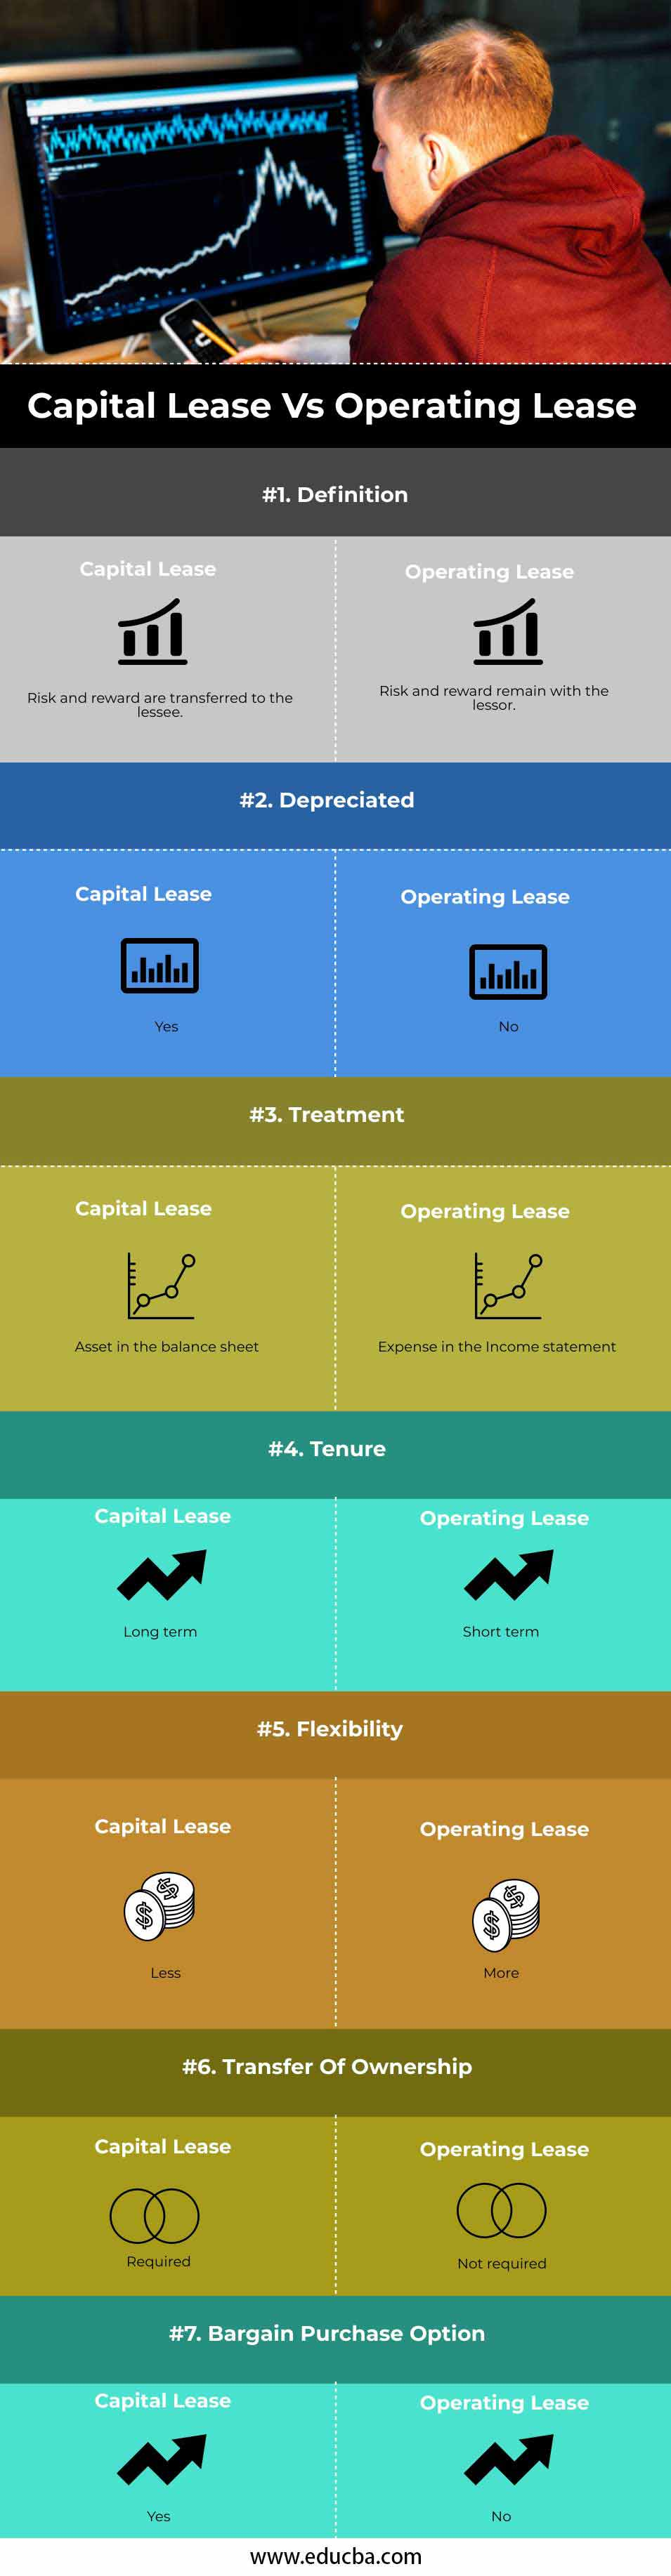 Capital Lease vs Operating Lease-info